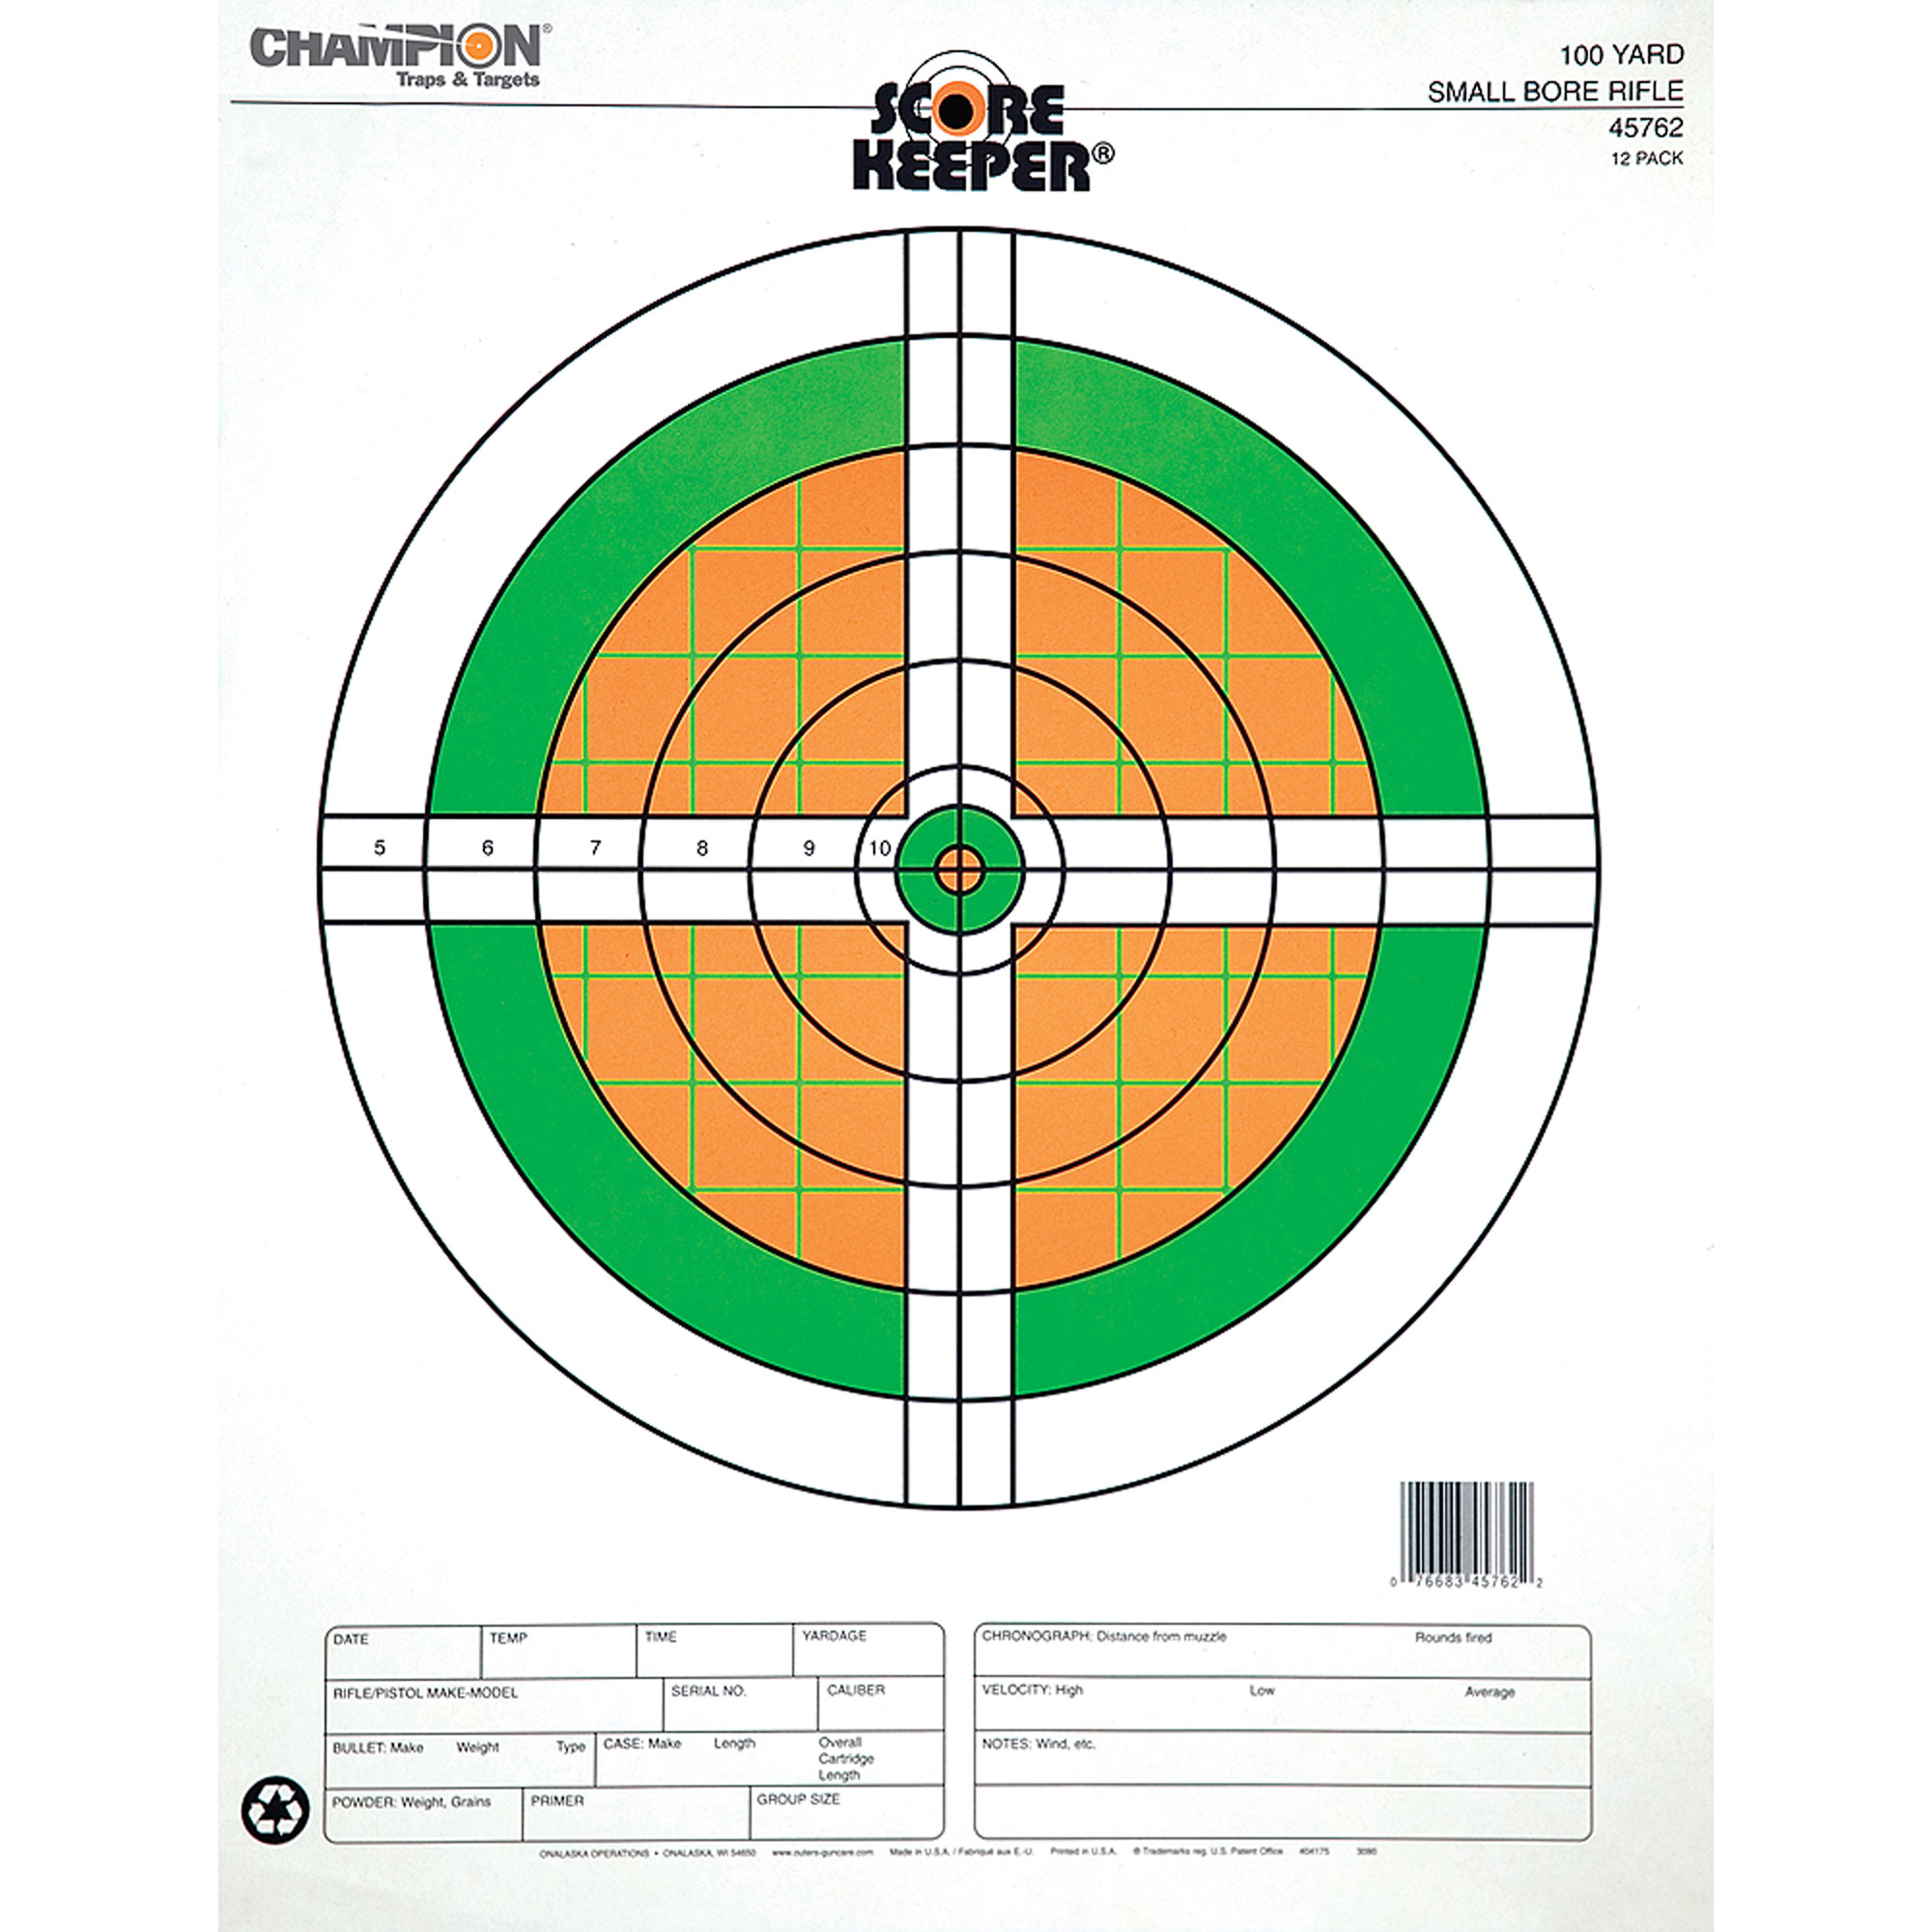 Wiring Diagram Champion Target Throwers Electrical Diagrams 196cc Traps And Targets Fluorescent Orange Green Bullseye Clay Thrower Bass Pro